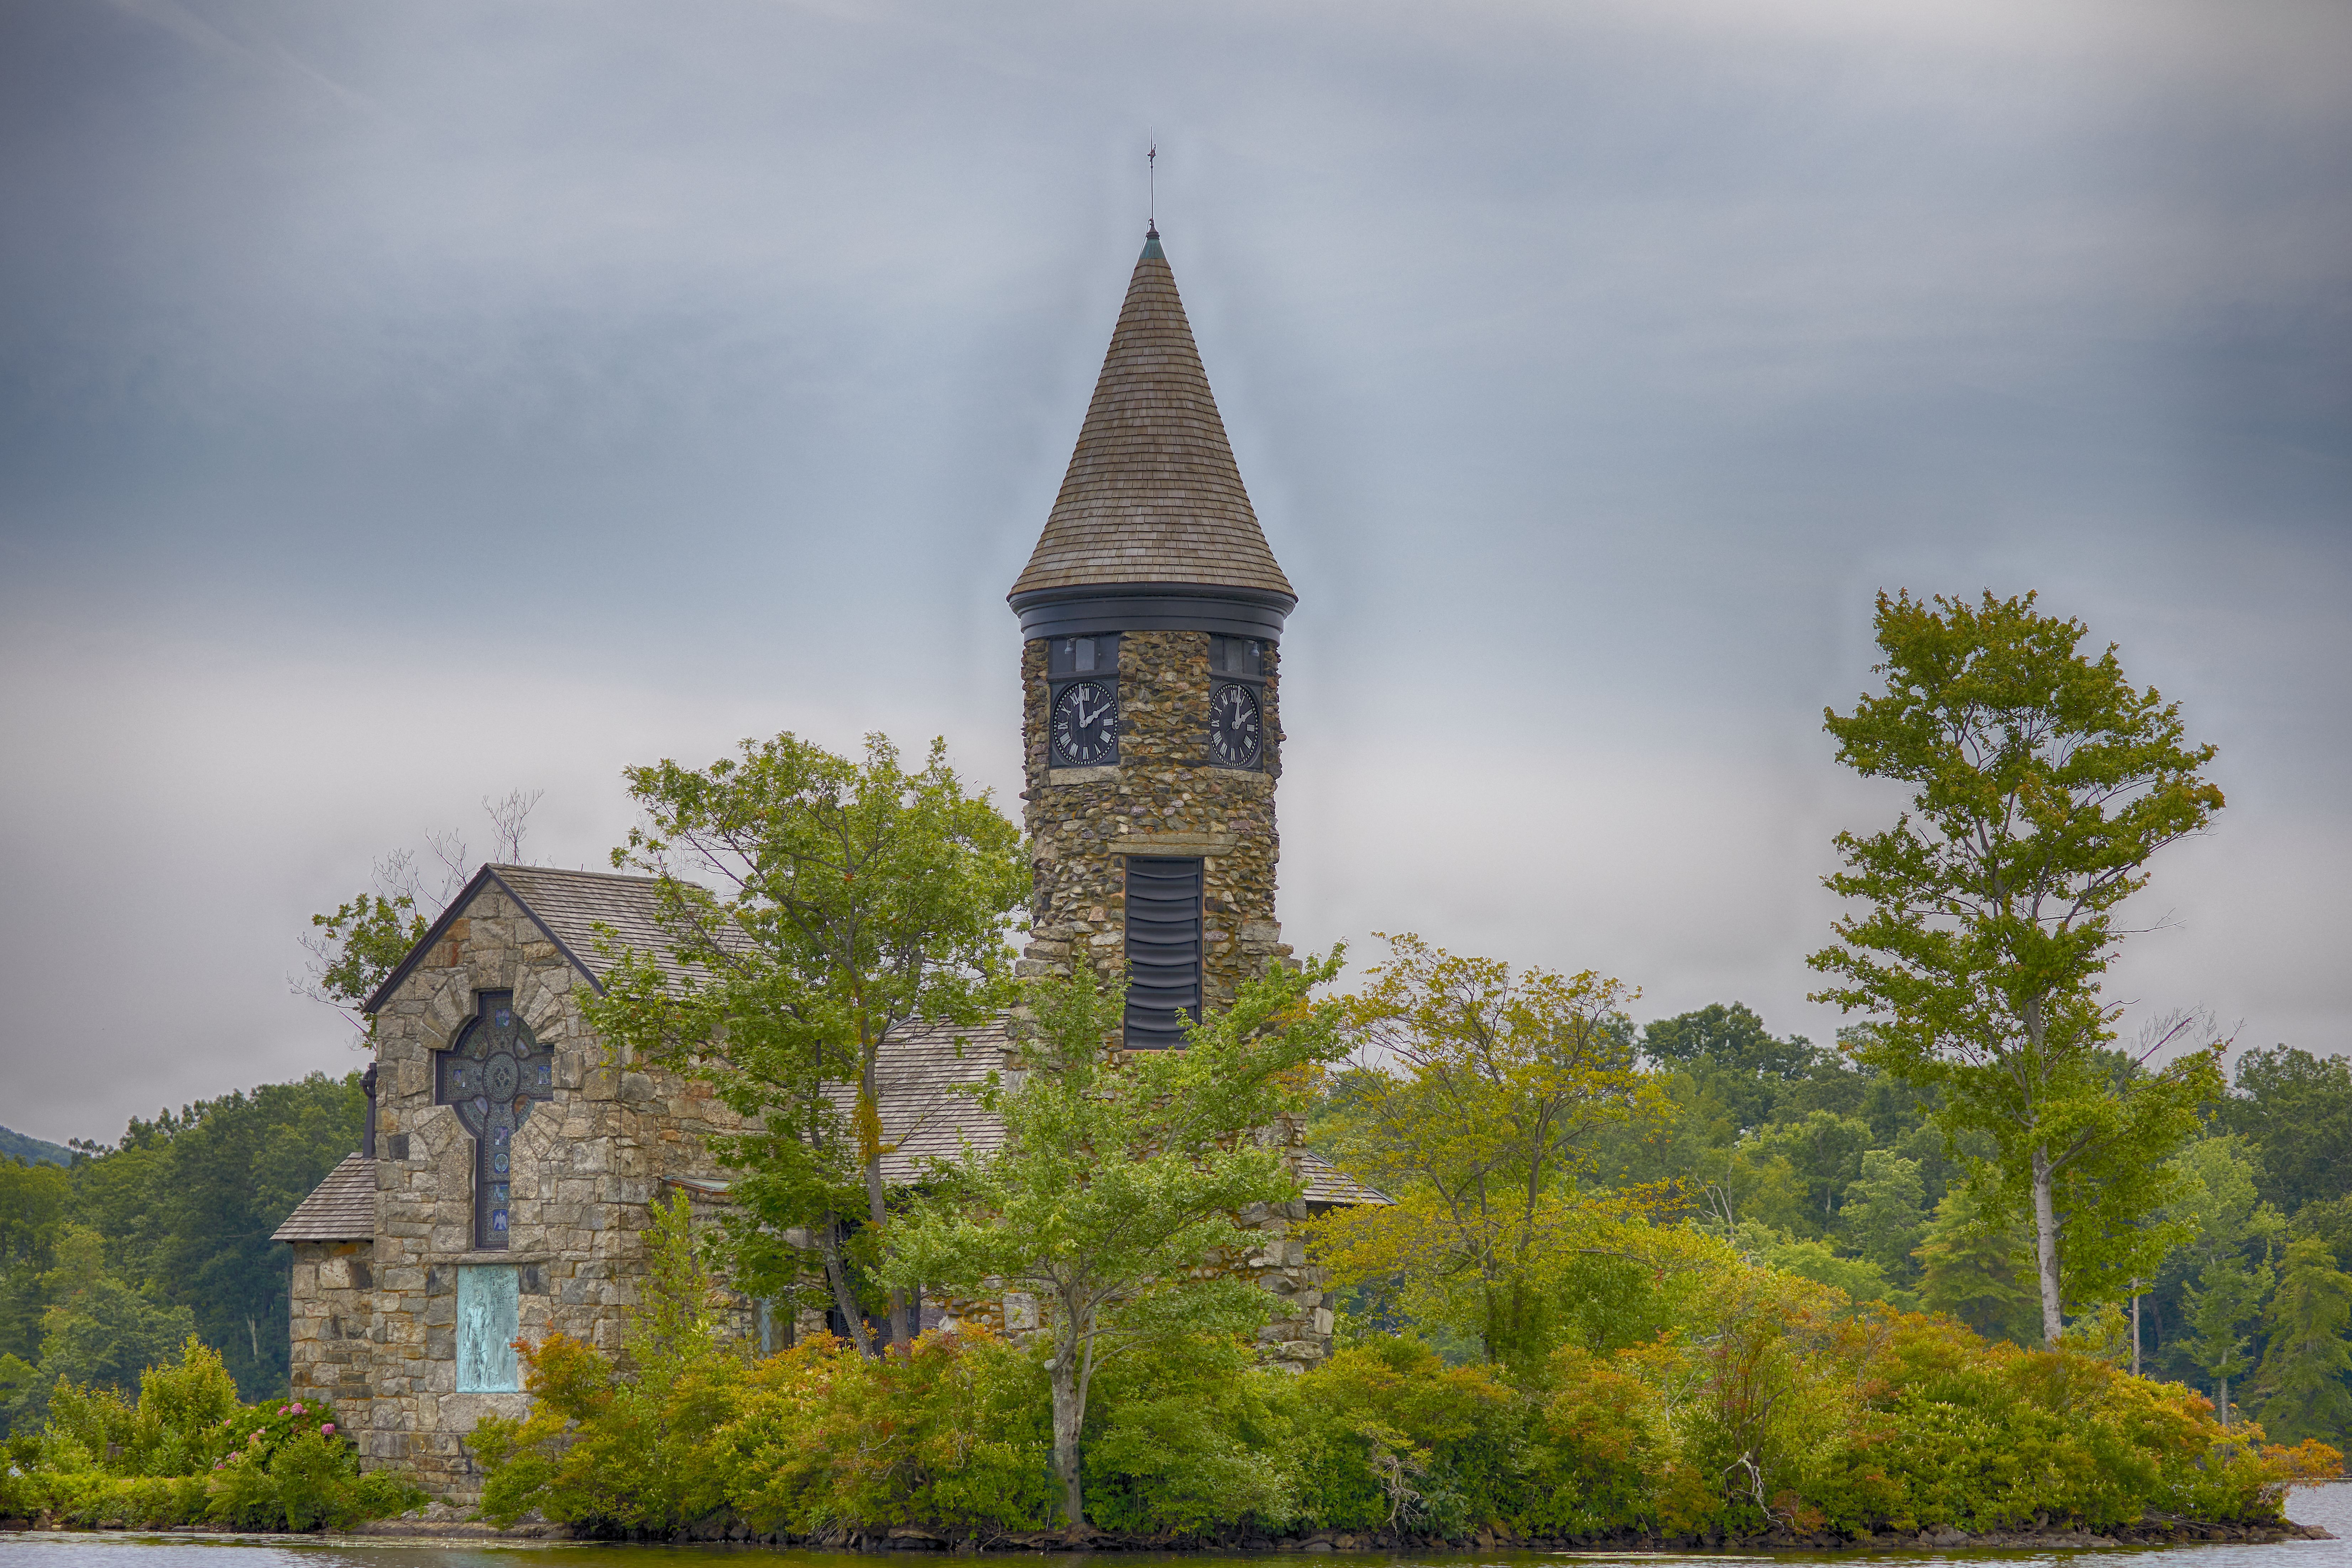 View of St. Hubert's Chapel from lake.